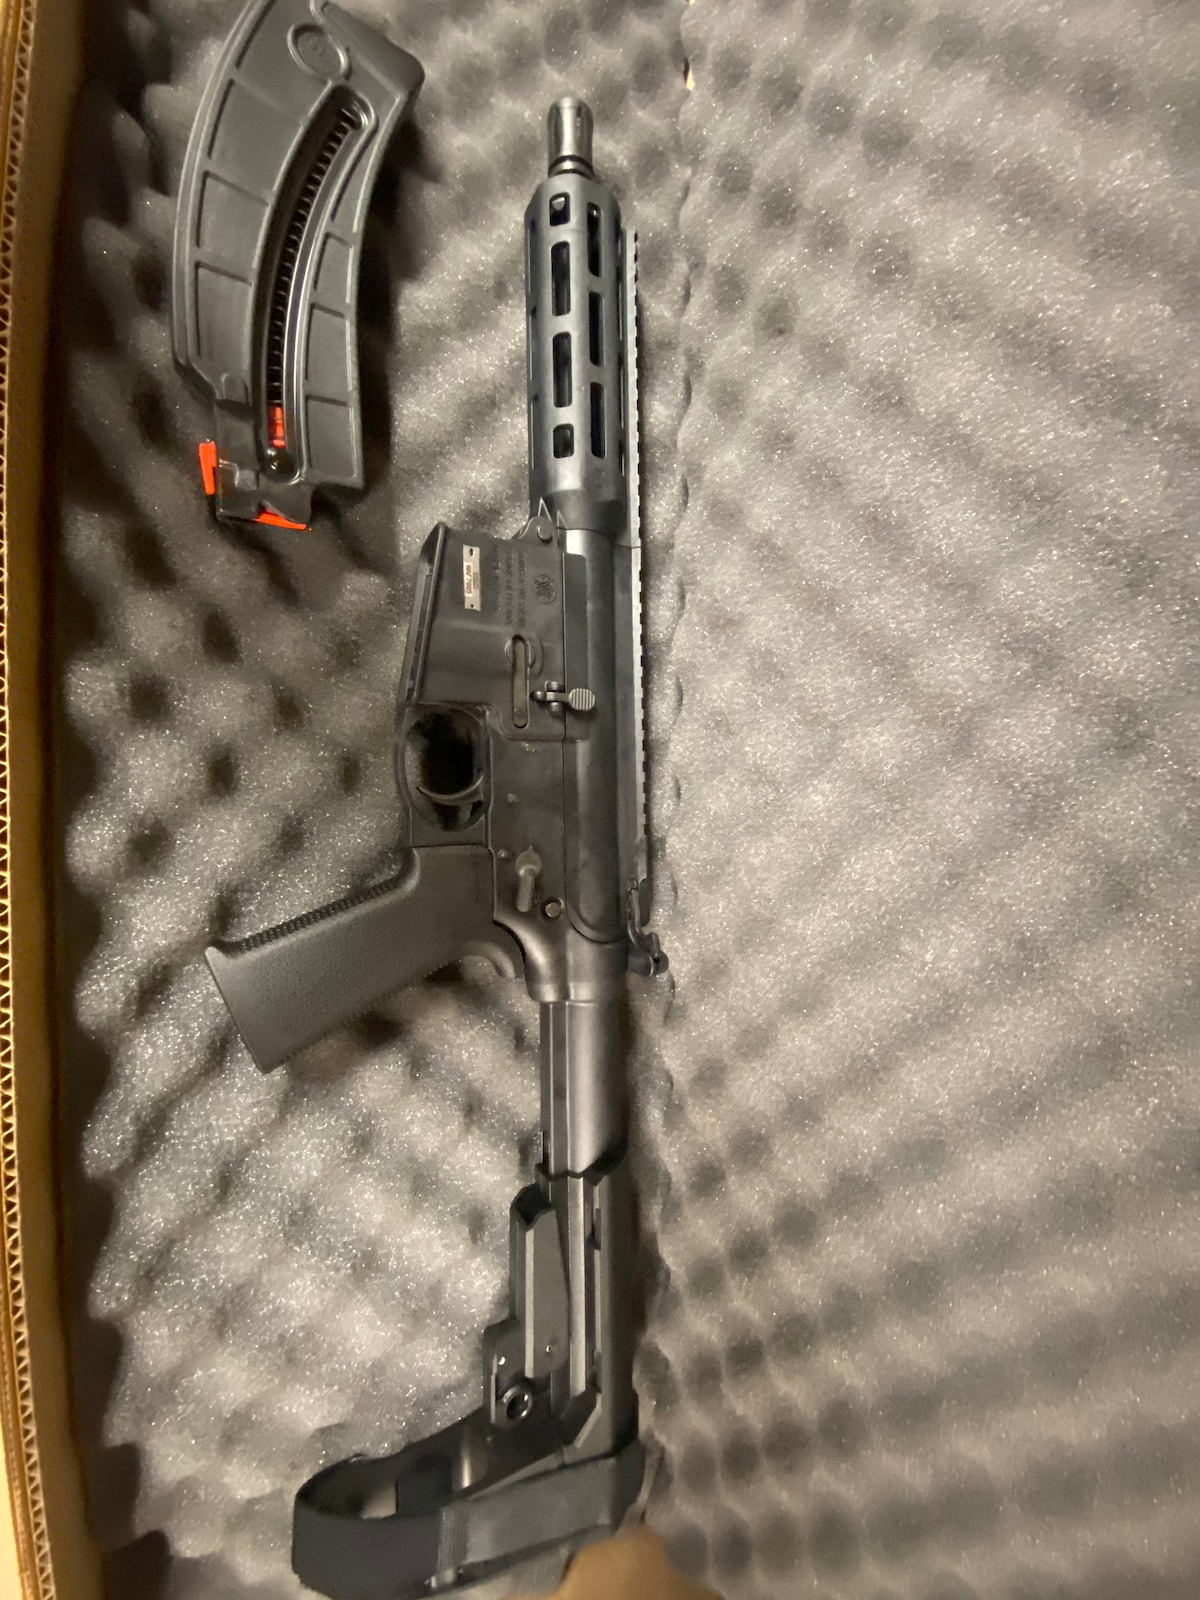 SMITH & WESSON M&P 15-22 Pistol